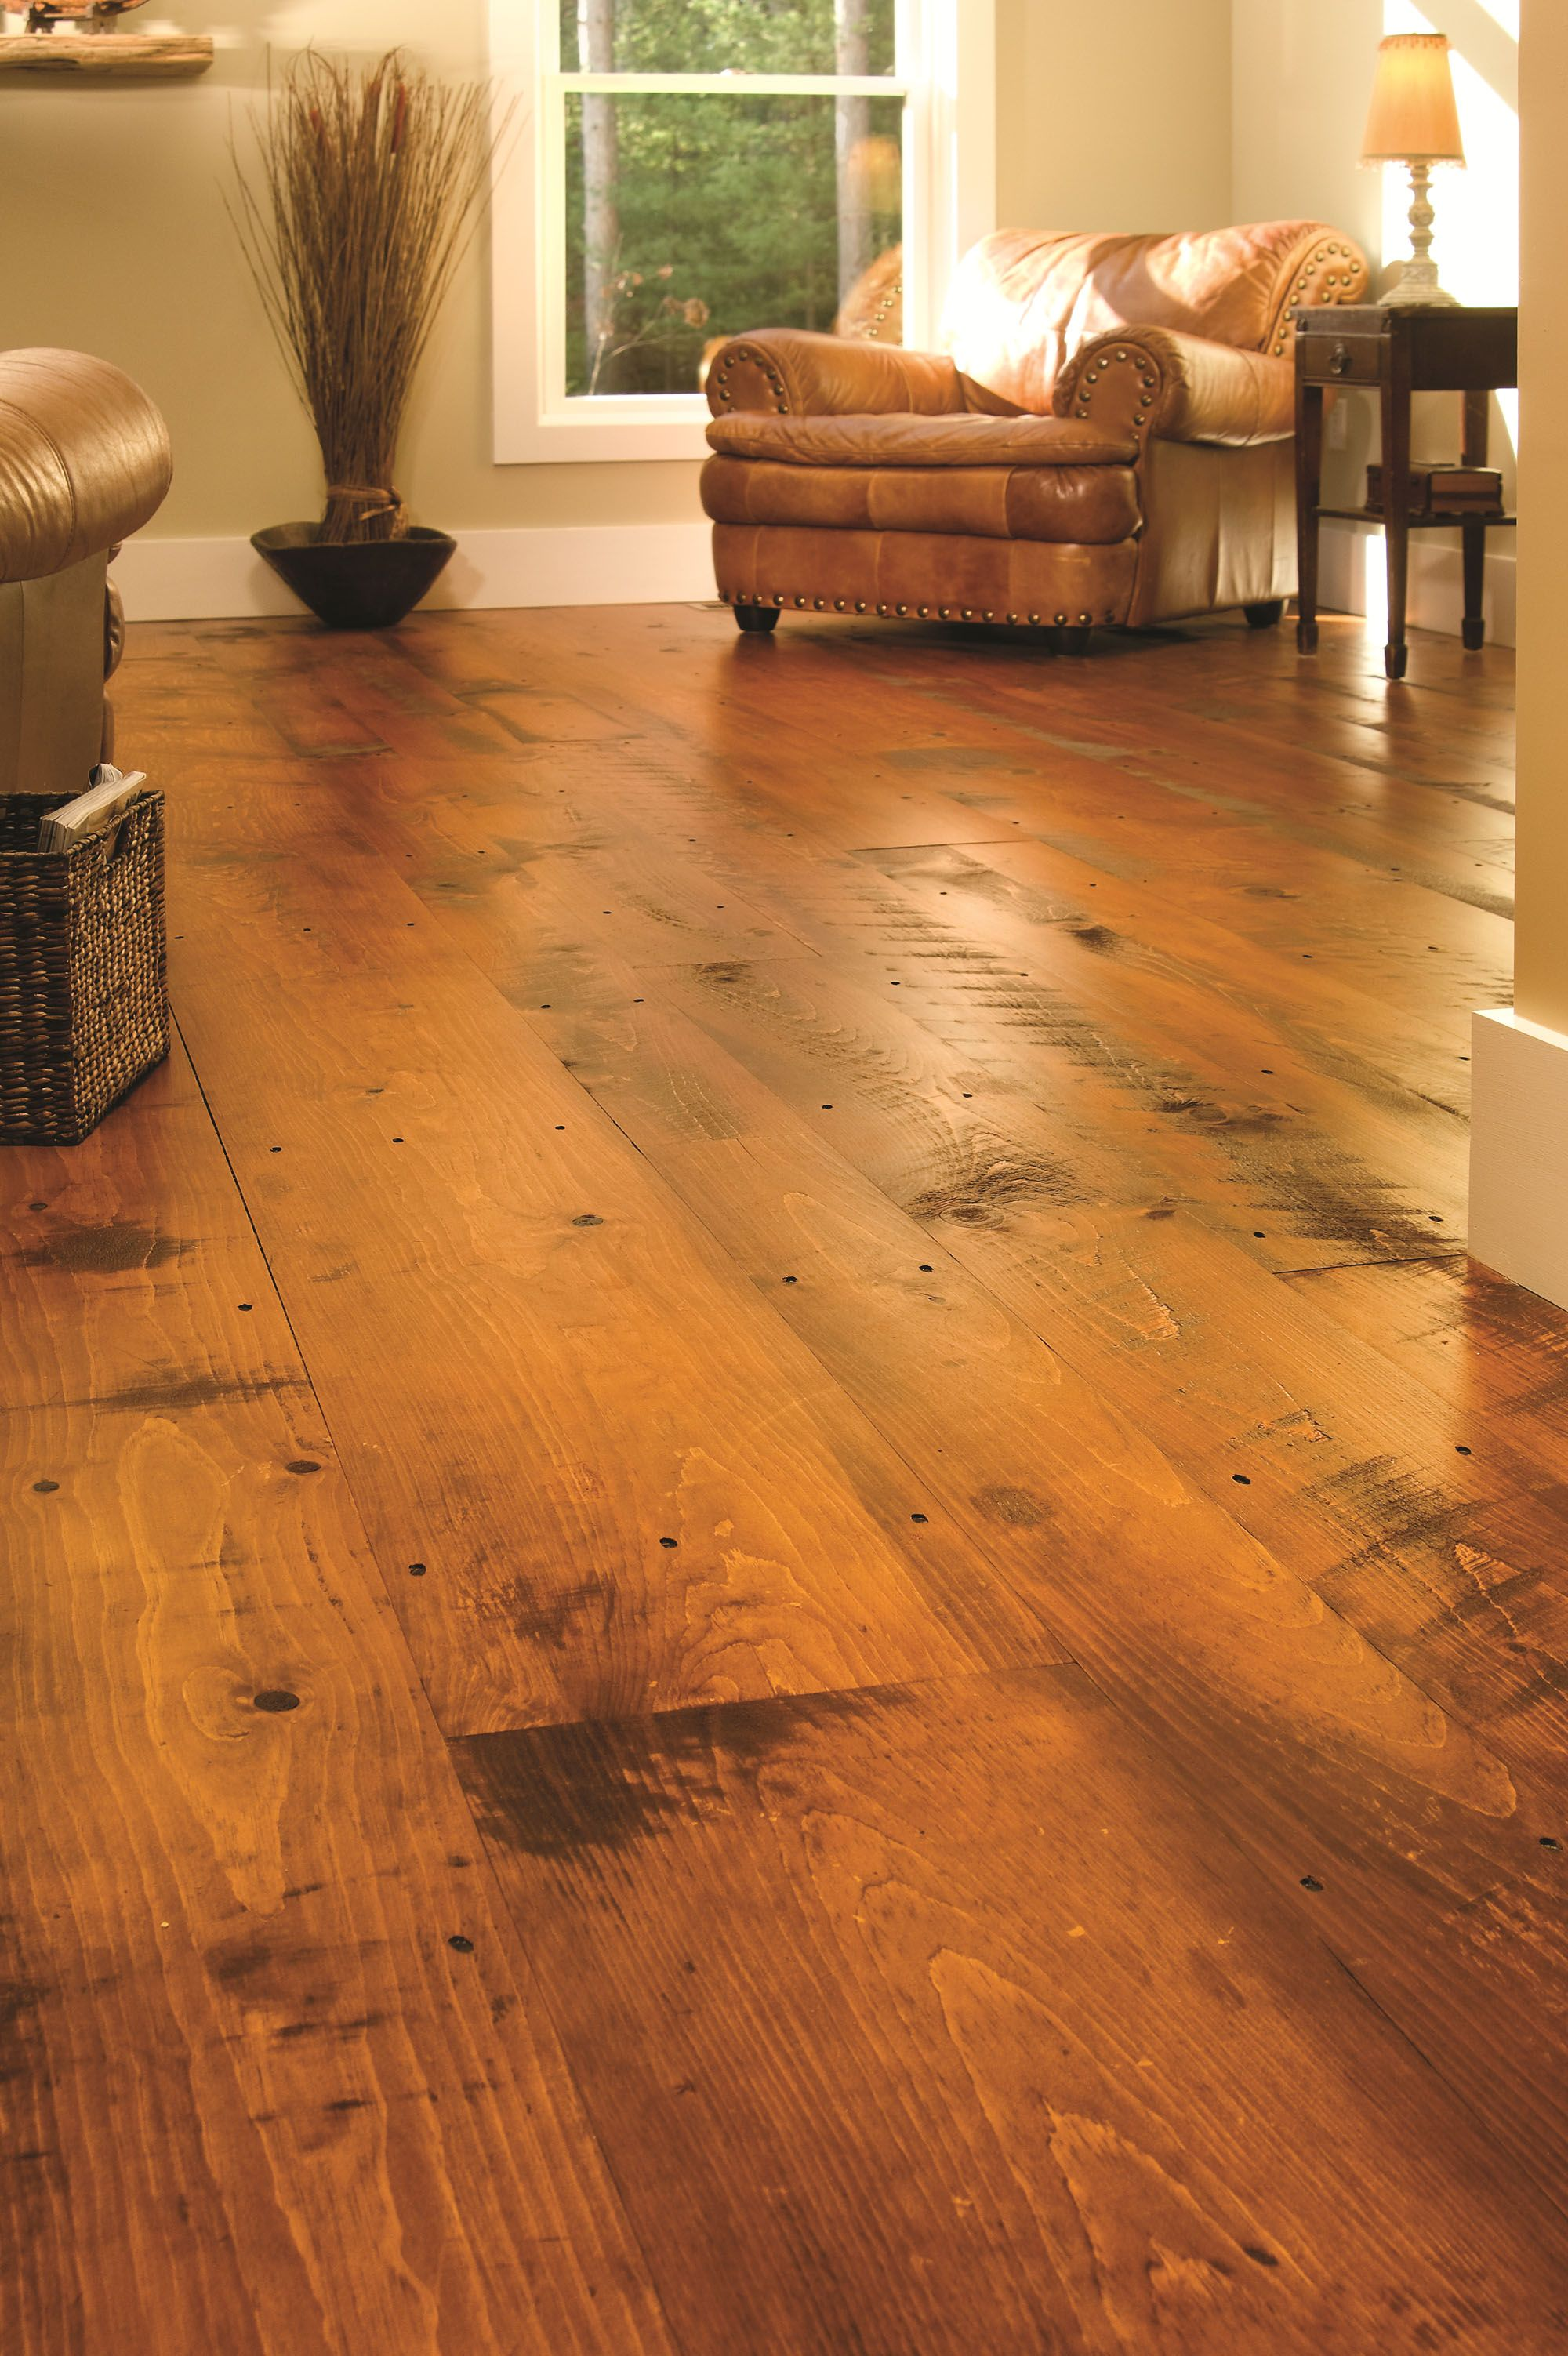 Carlisle Wide Plank Floors Eastern Hit Or Miss White Pine In A Traditional Living Room The Quality Of Floor Is Matched Only By That